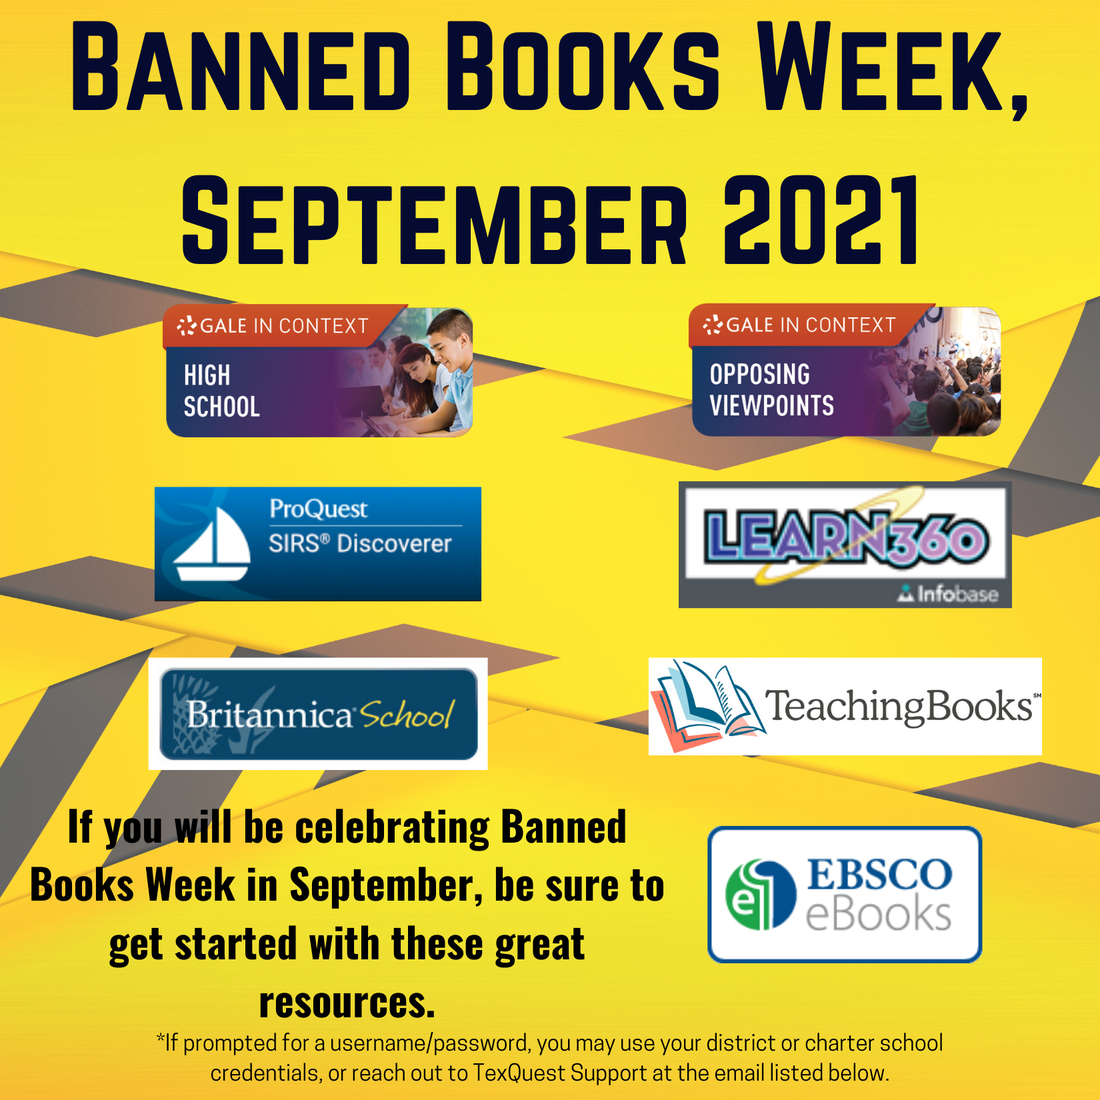 image of banned books week flyer with links to resources